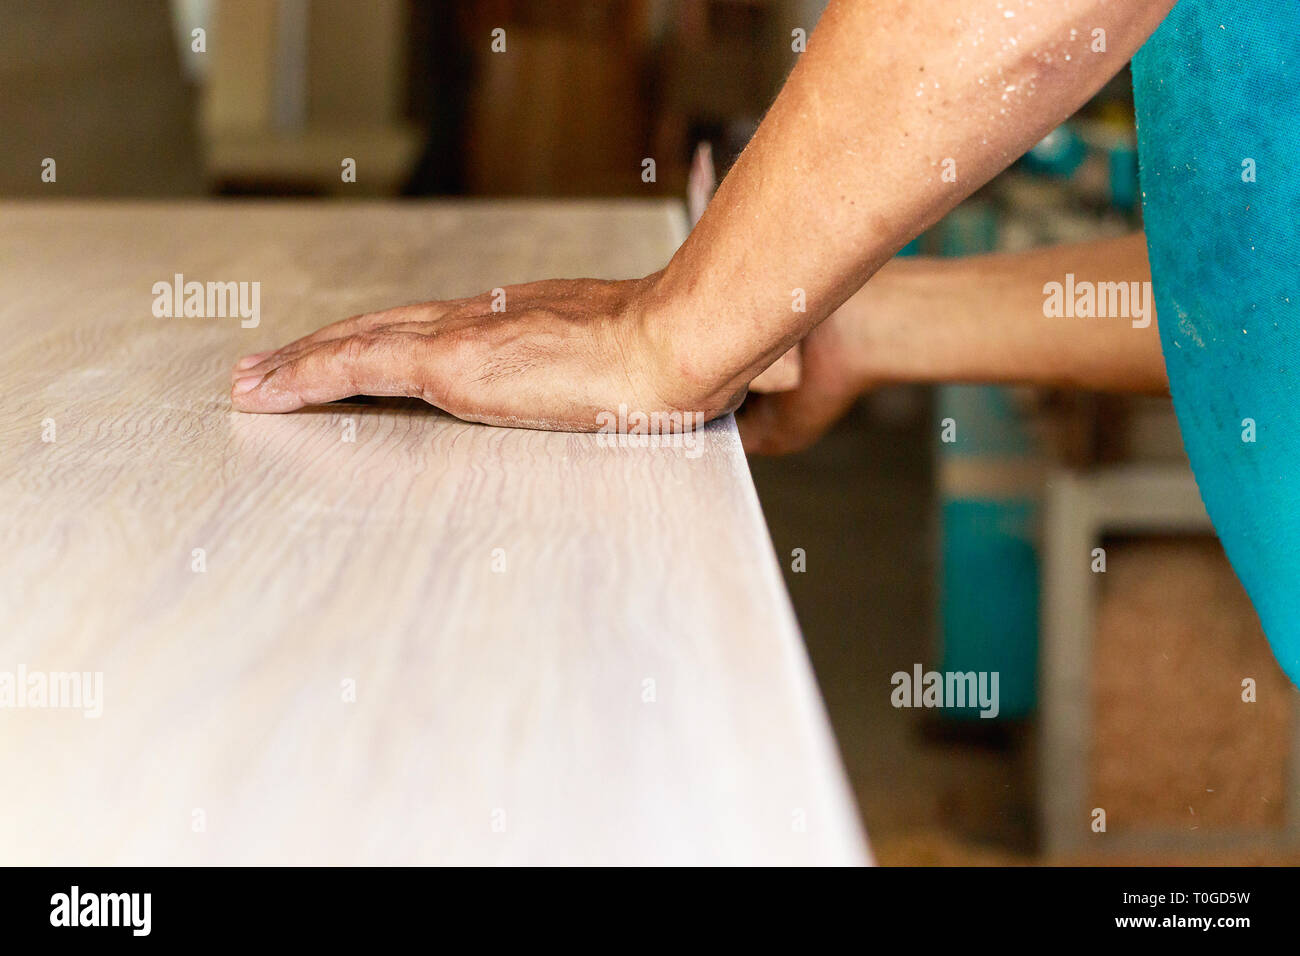 Male carpenter hands sanding the edge of a table manually, indoors. - Stock Image